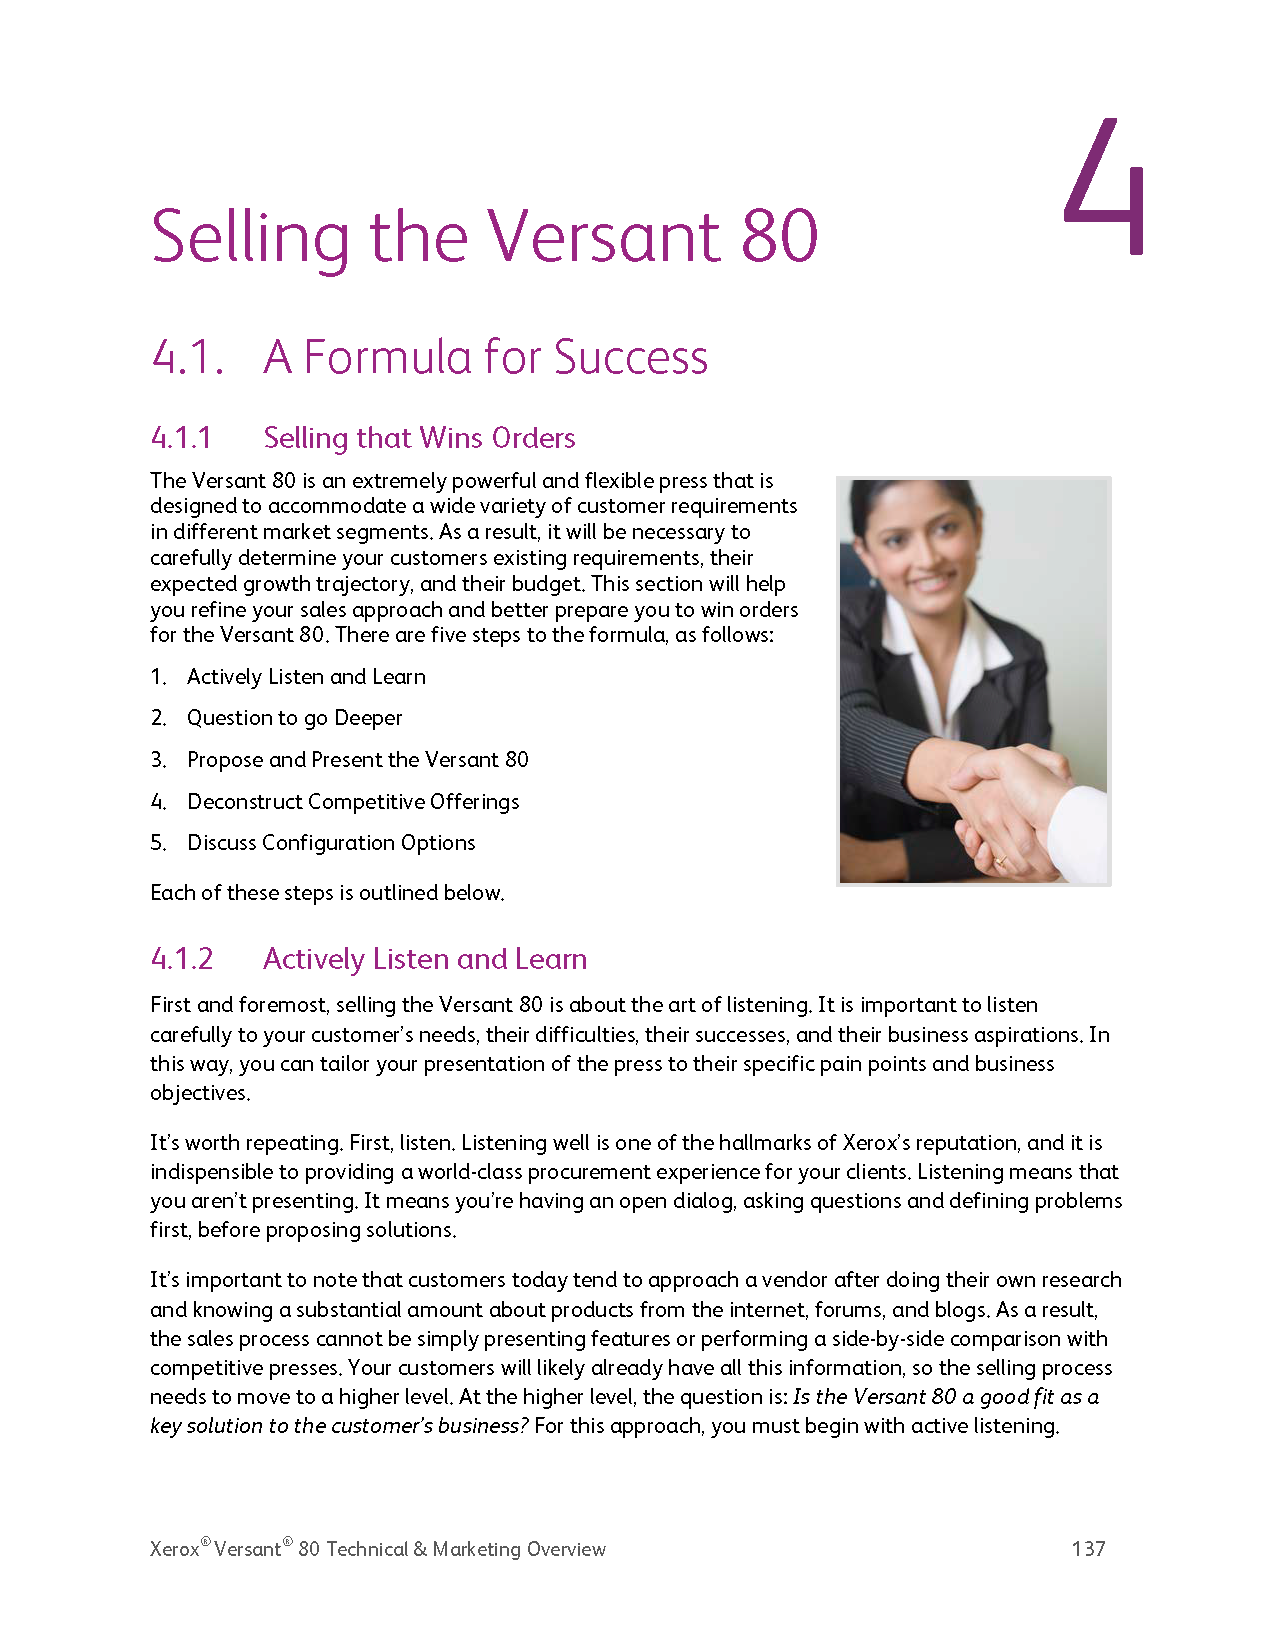 Versant 80 TMO Final_12.18.14.Optimized_Page_145.png